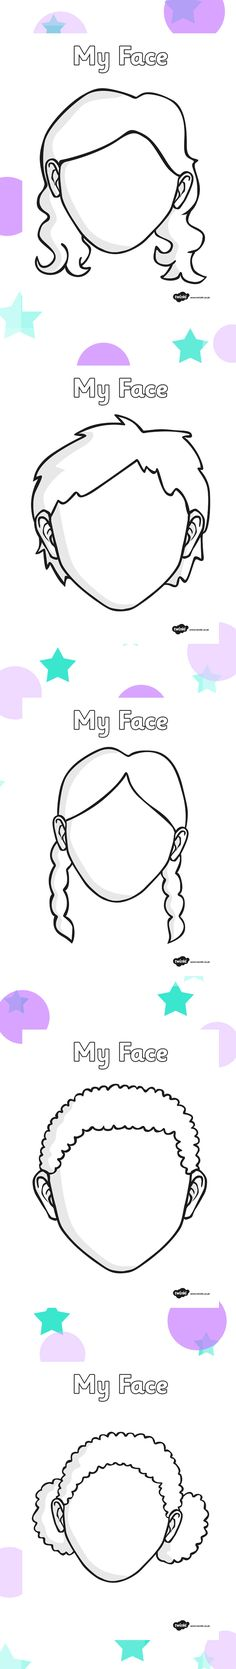 blank faces twinkl more - PIPicStats Science For Kids, Art For Kids, Crafts For Kids, All About Me Crafts, Face Template, Teaching Aids, Classroom Displays, Eyfs, Graphic Organizers